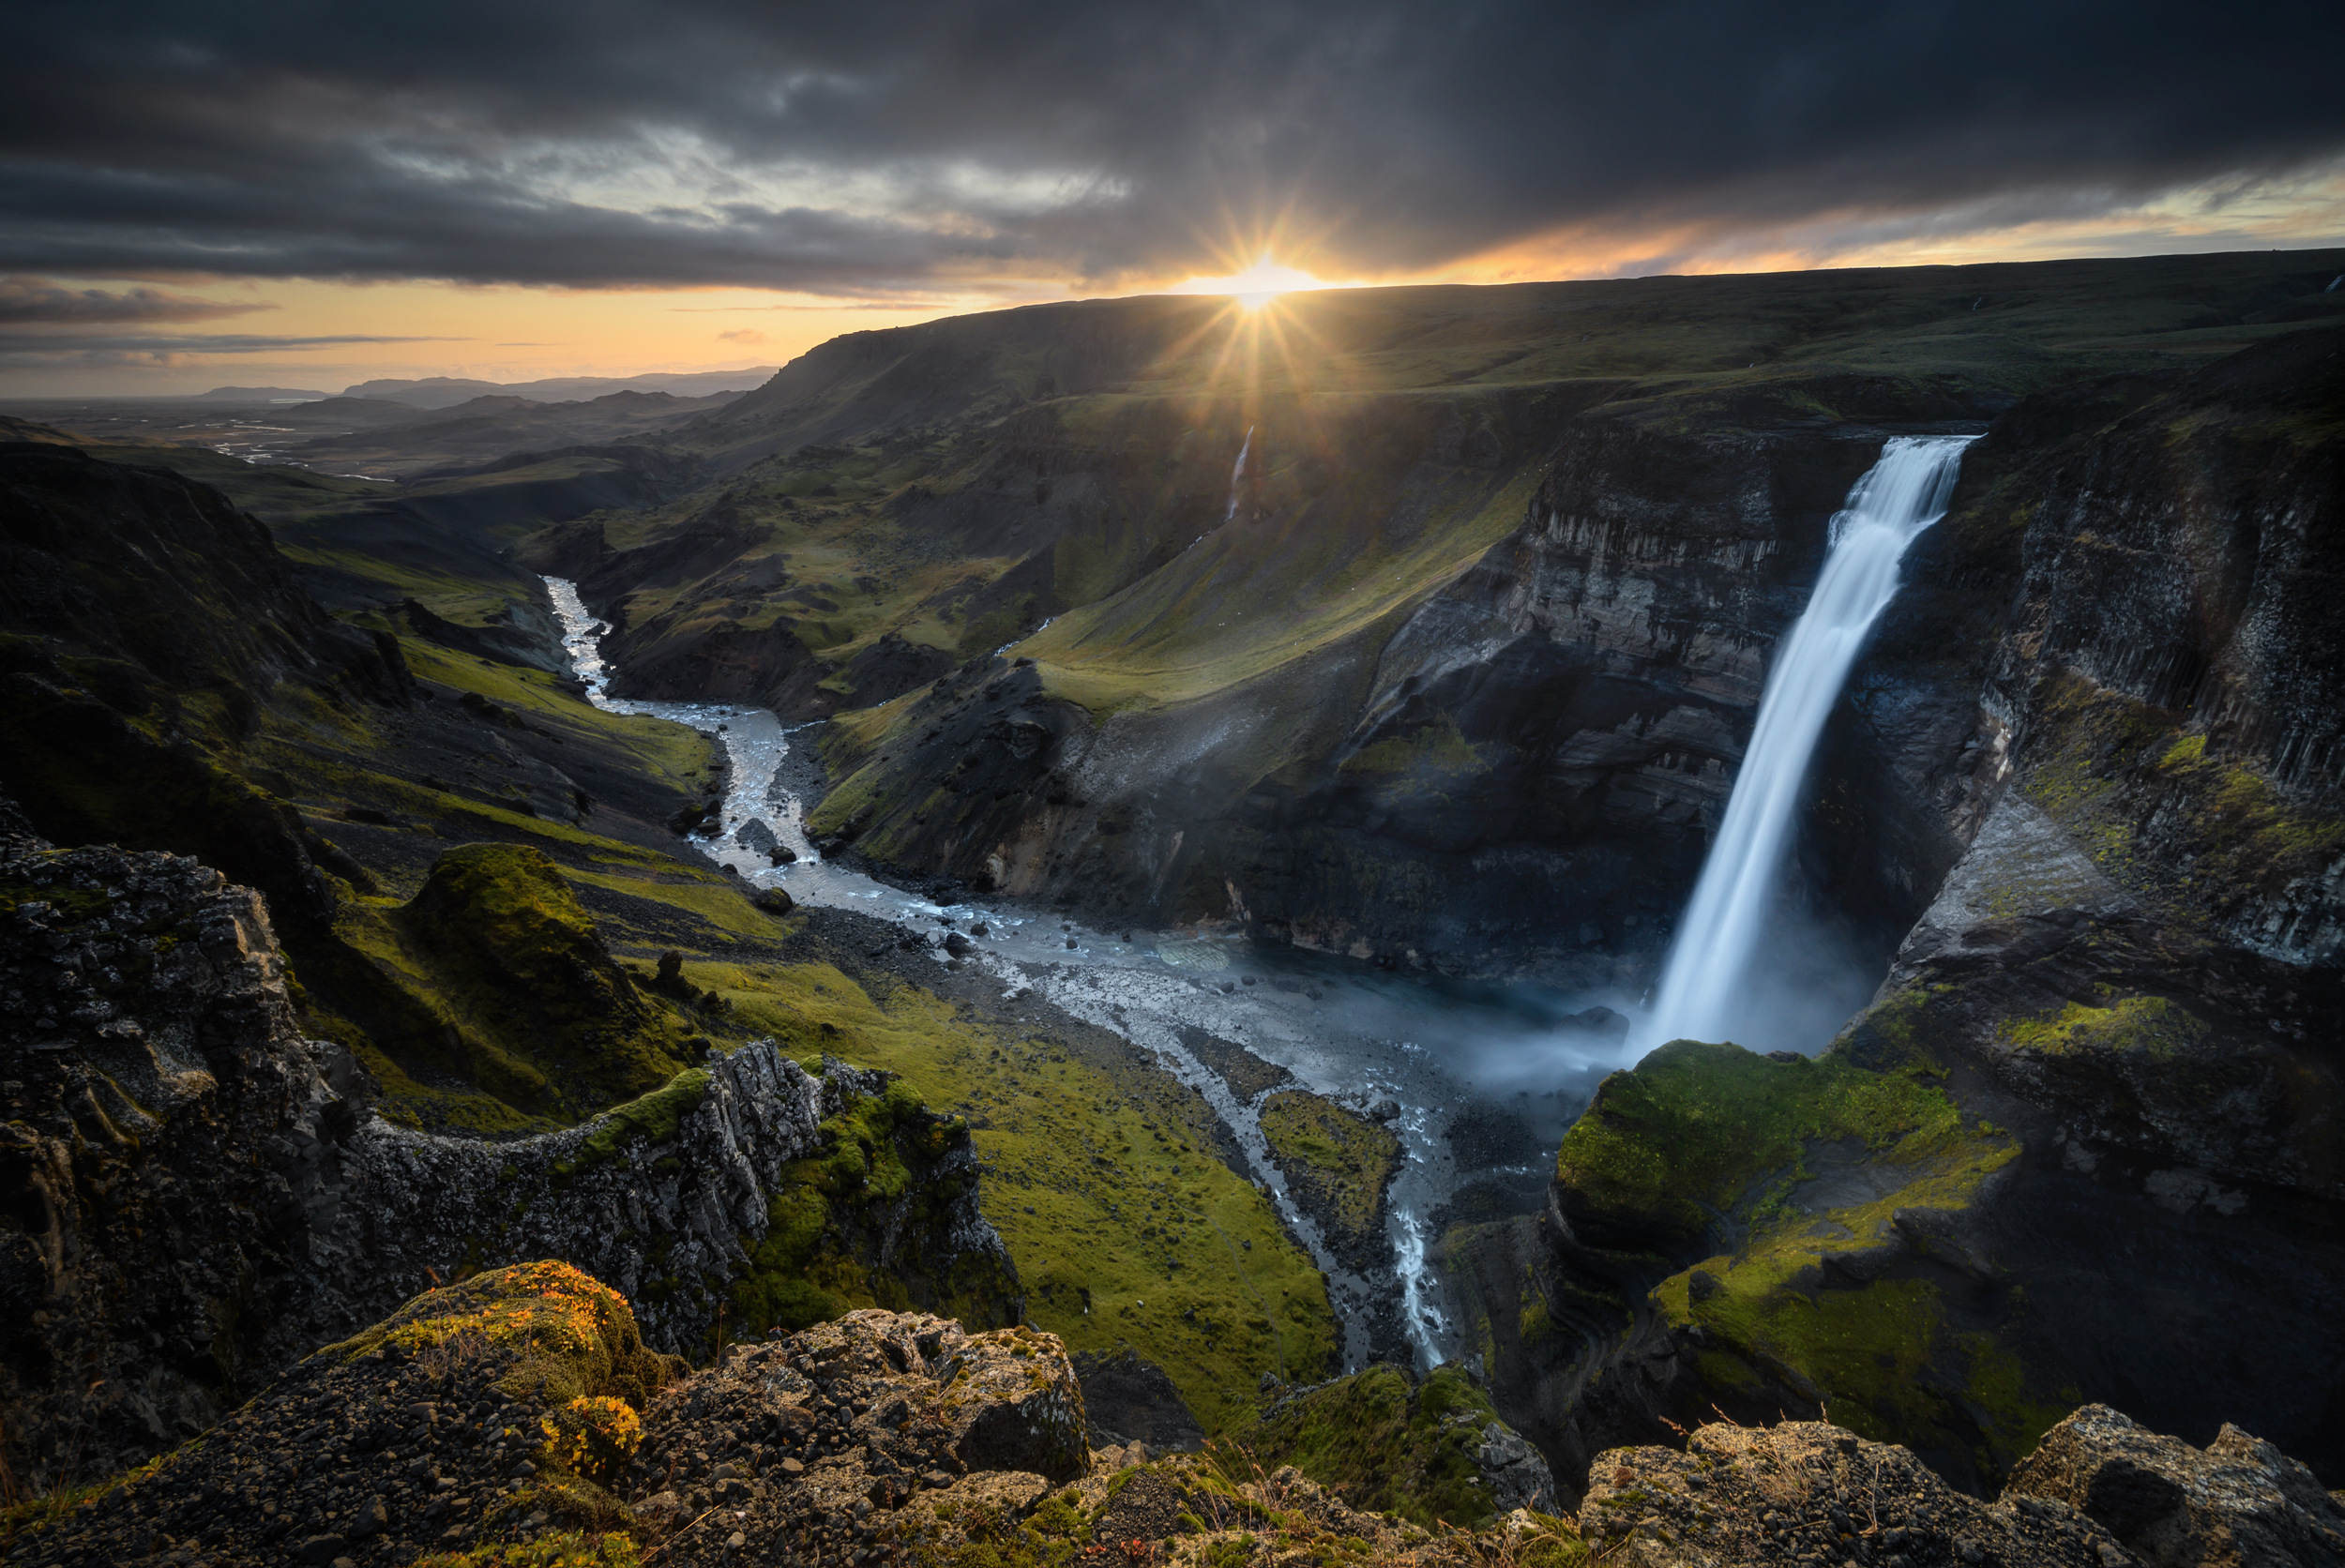 Sunset at Haifoss Waterfall